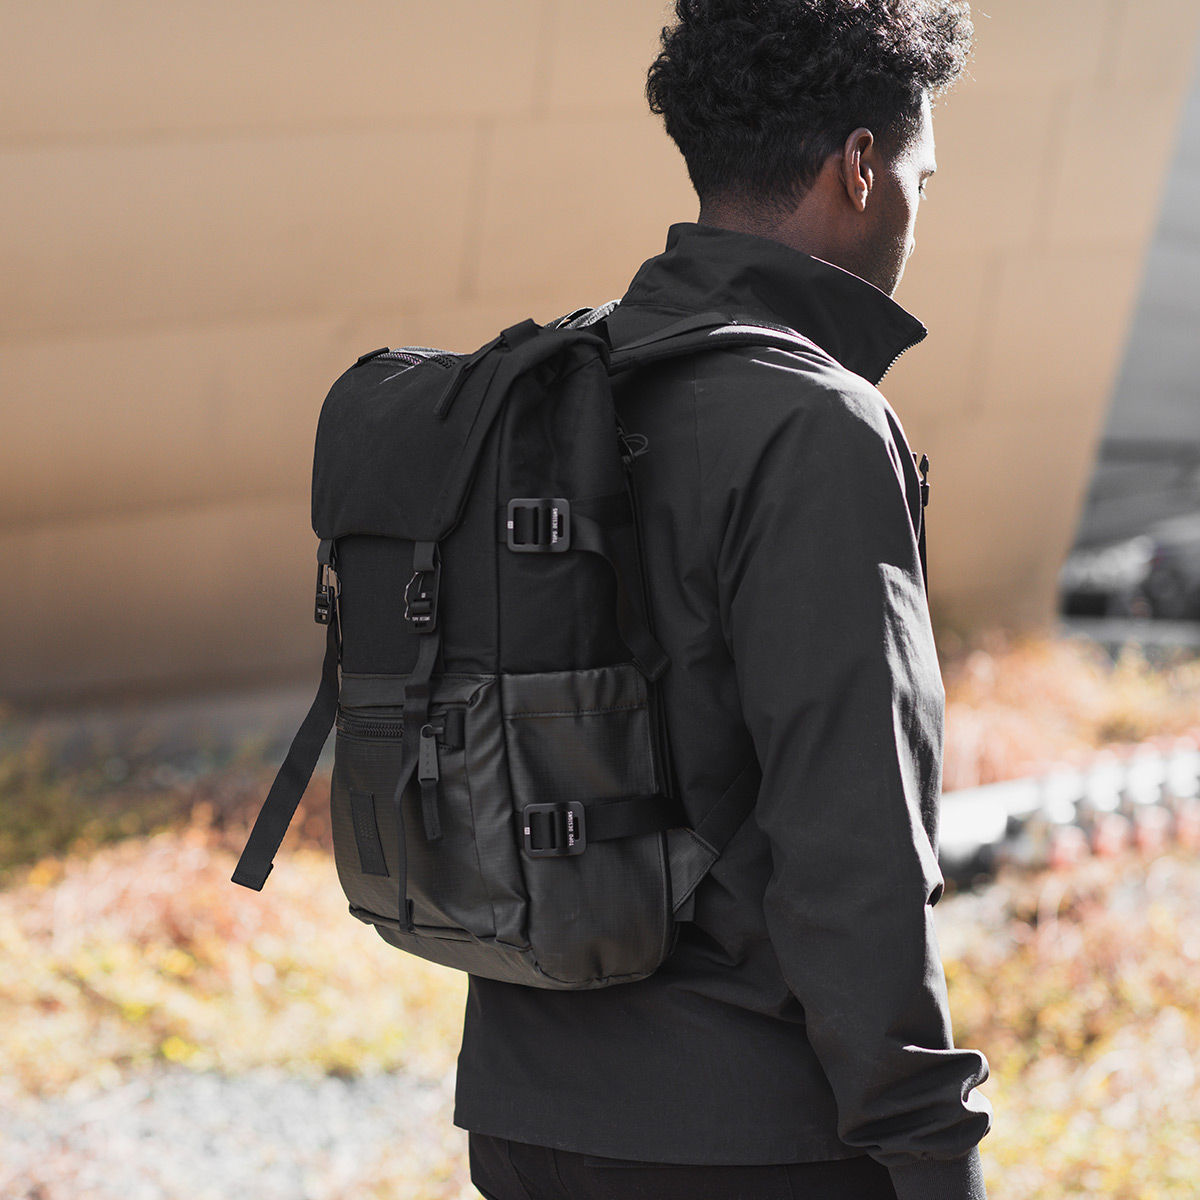 Topo Designs Rover Pack Premium Black, durable, lightweight and water-resistant pack for daily use